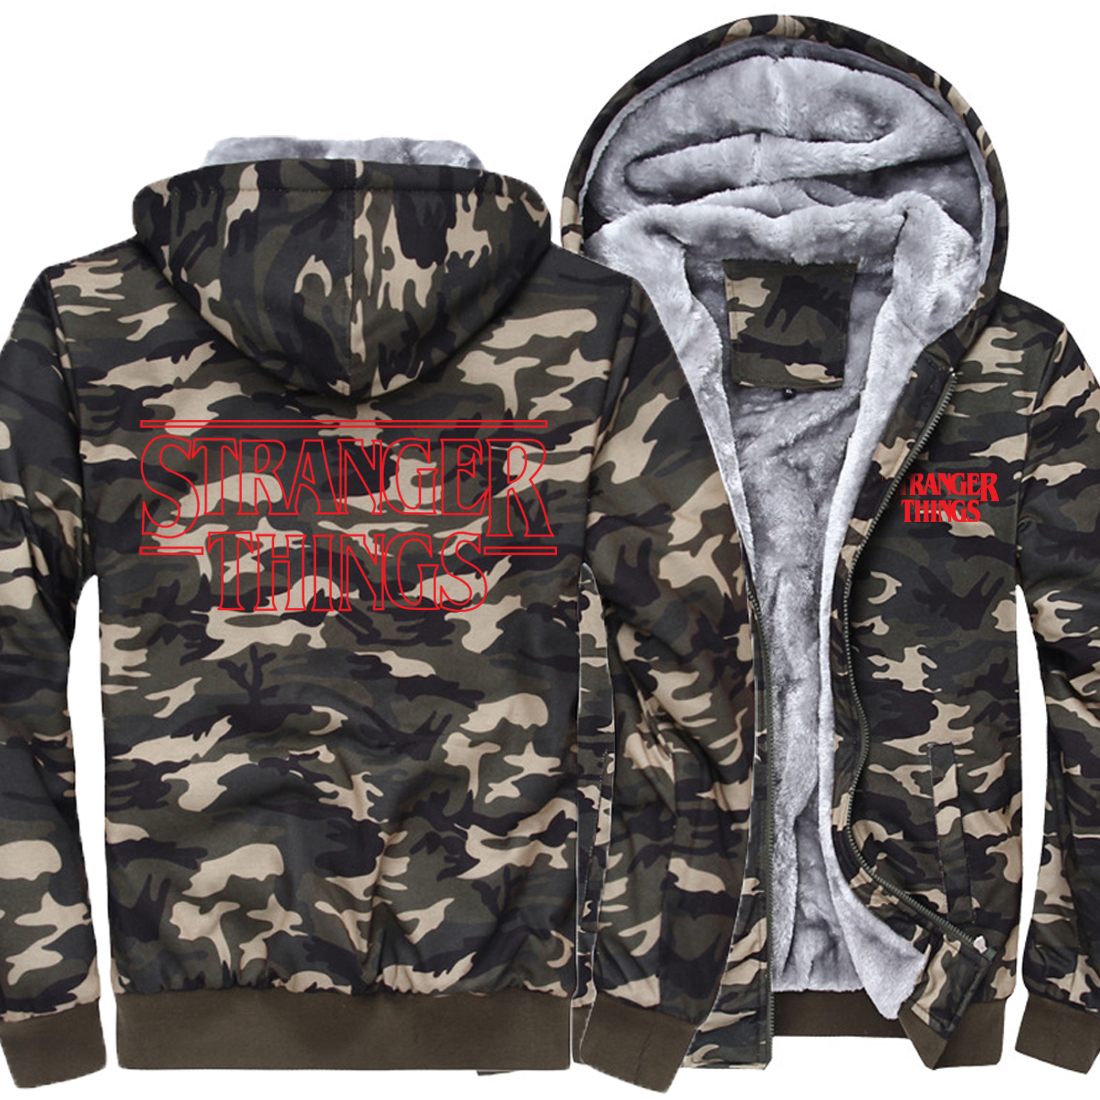 winter warm wool liner cothing male quality man 39 s hoodies 2019 solid Camouflage color sweatshirt raglan long sleeve tracksuit in Hoodies amp Sweatshirts from Men 39 s Clothing